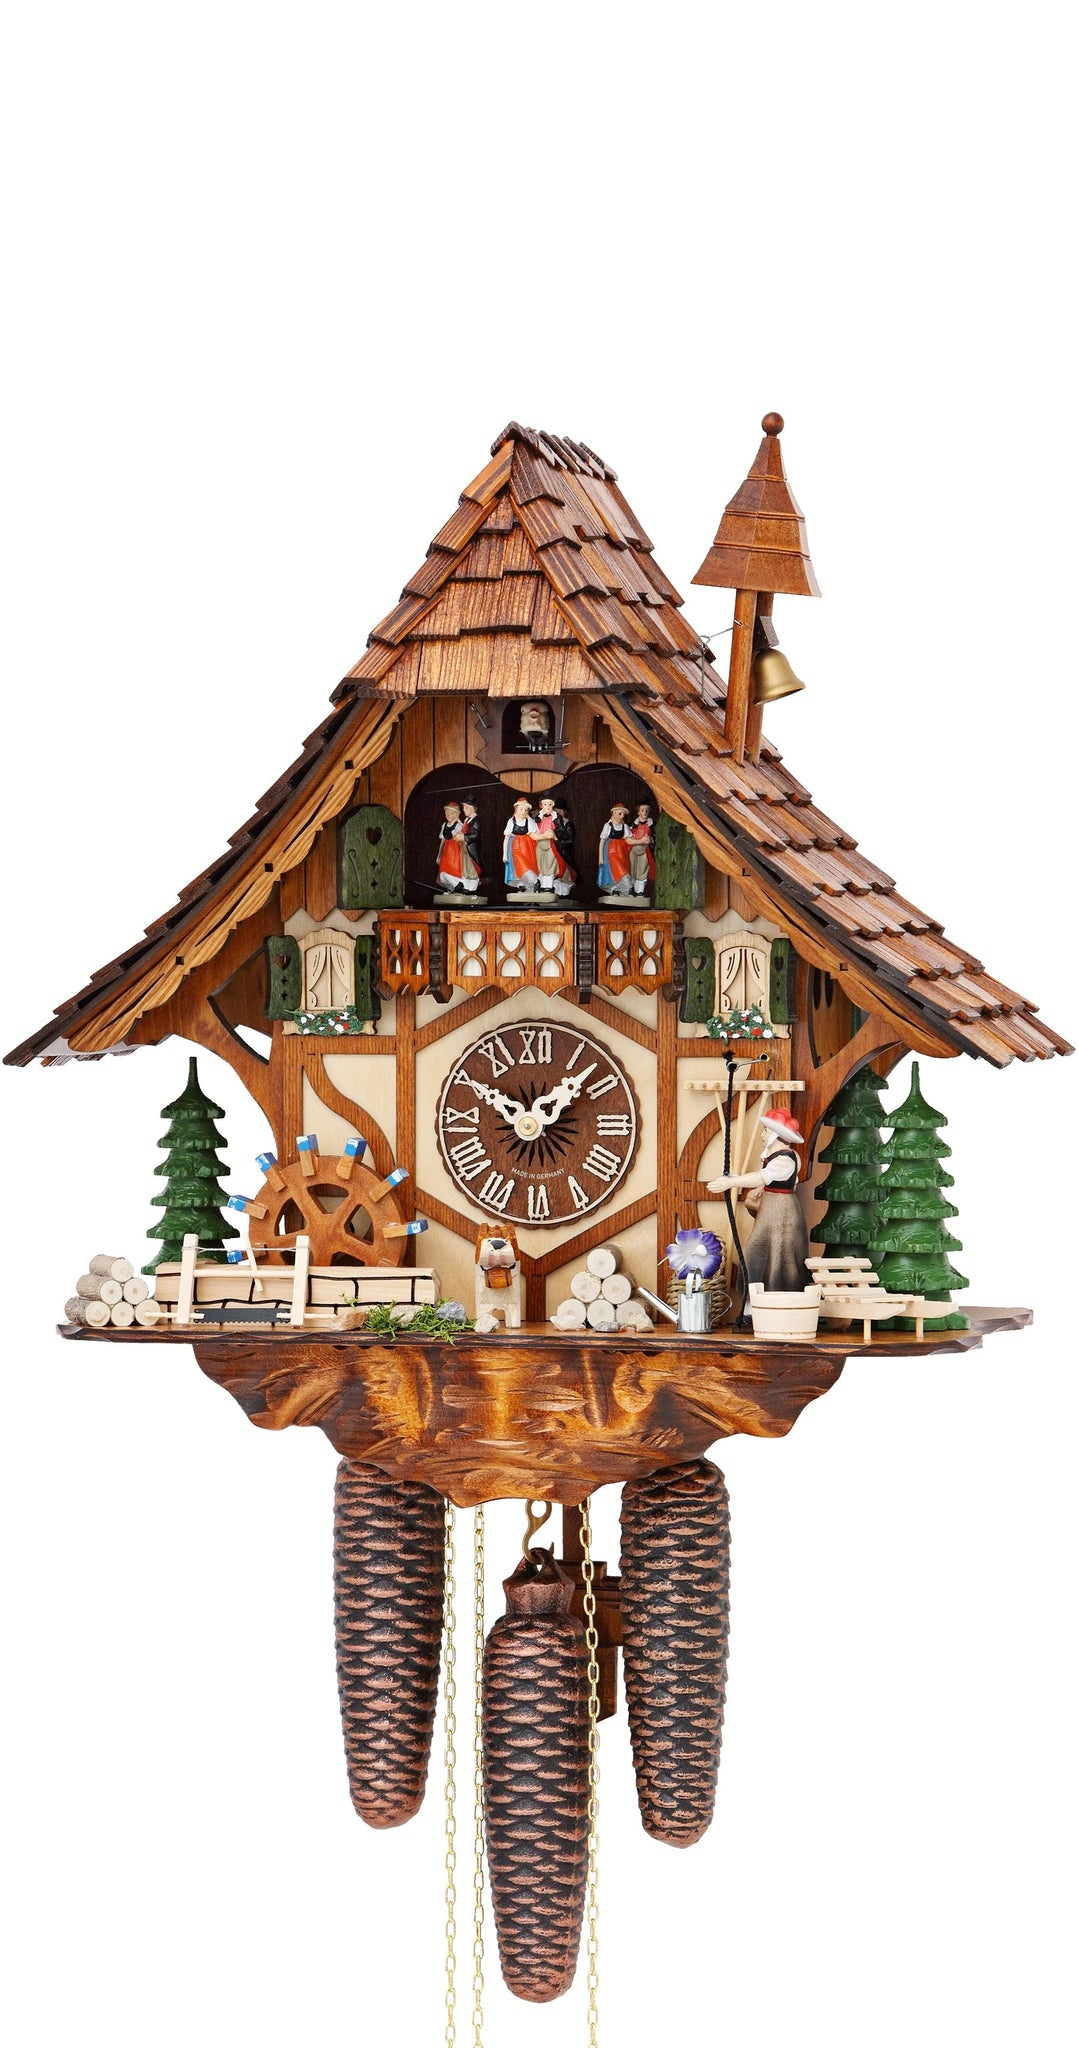 Cuckoo Clock Black Forest House with Moving Girl and Mill Wheel by Hekas - Cuckoo Clock Meister